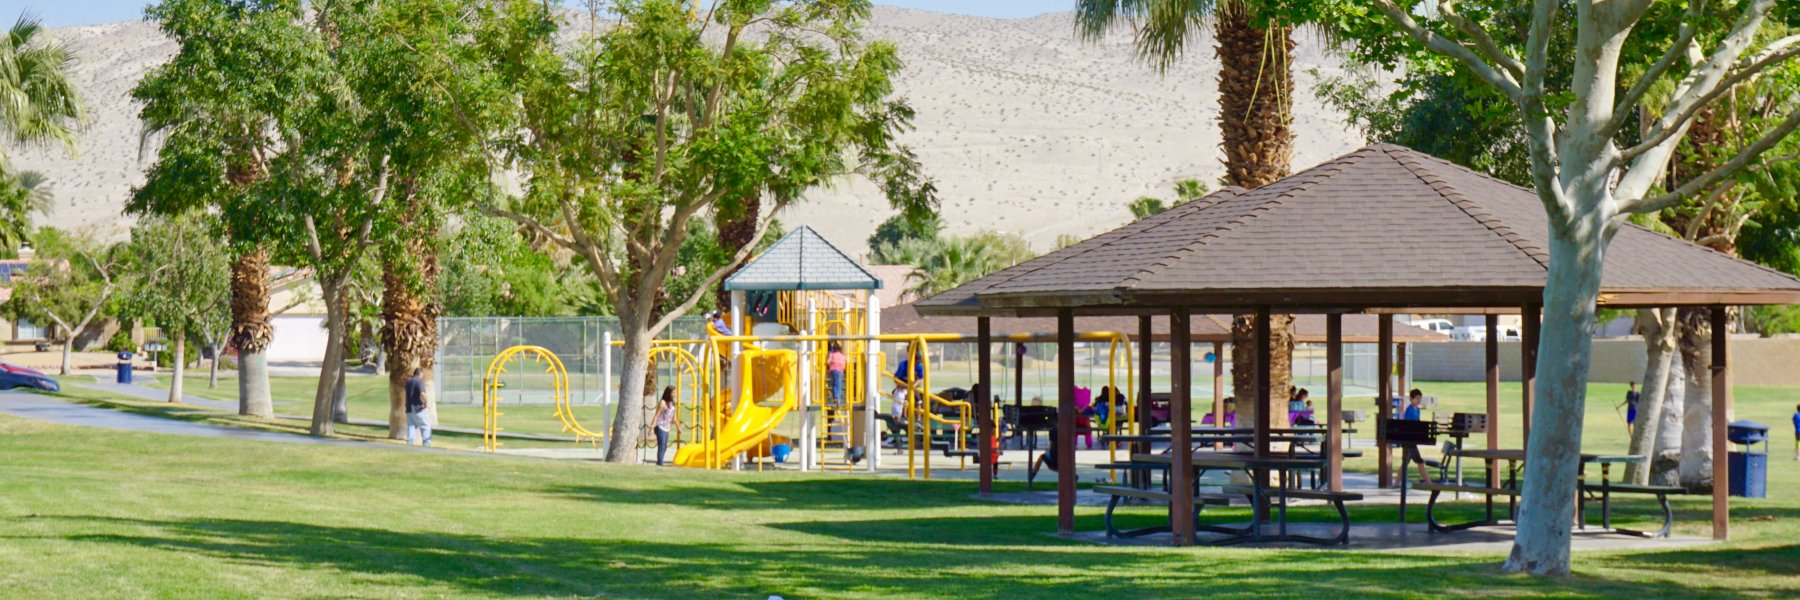 Century Park is a community of homes in Cathedral City California